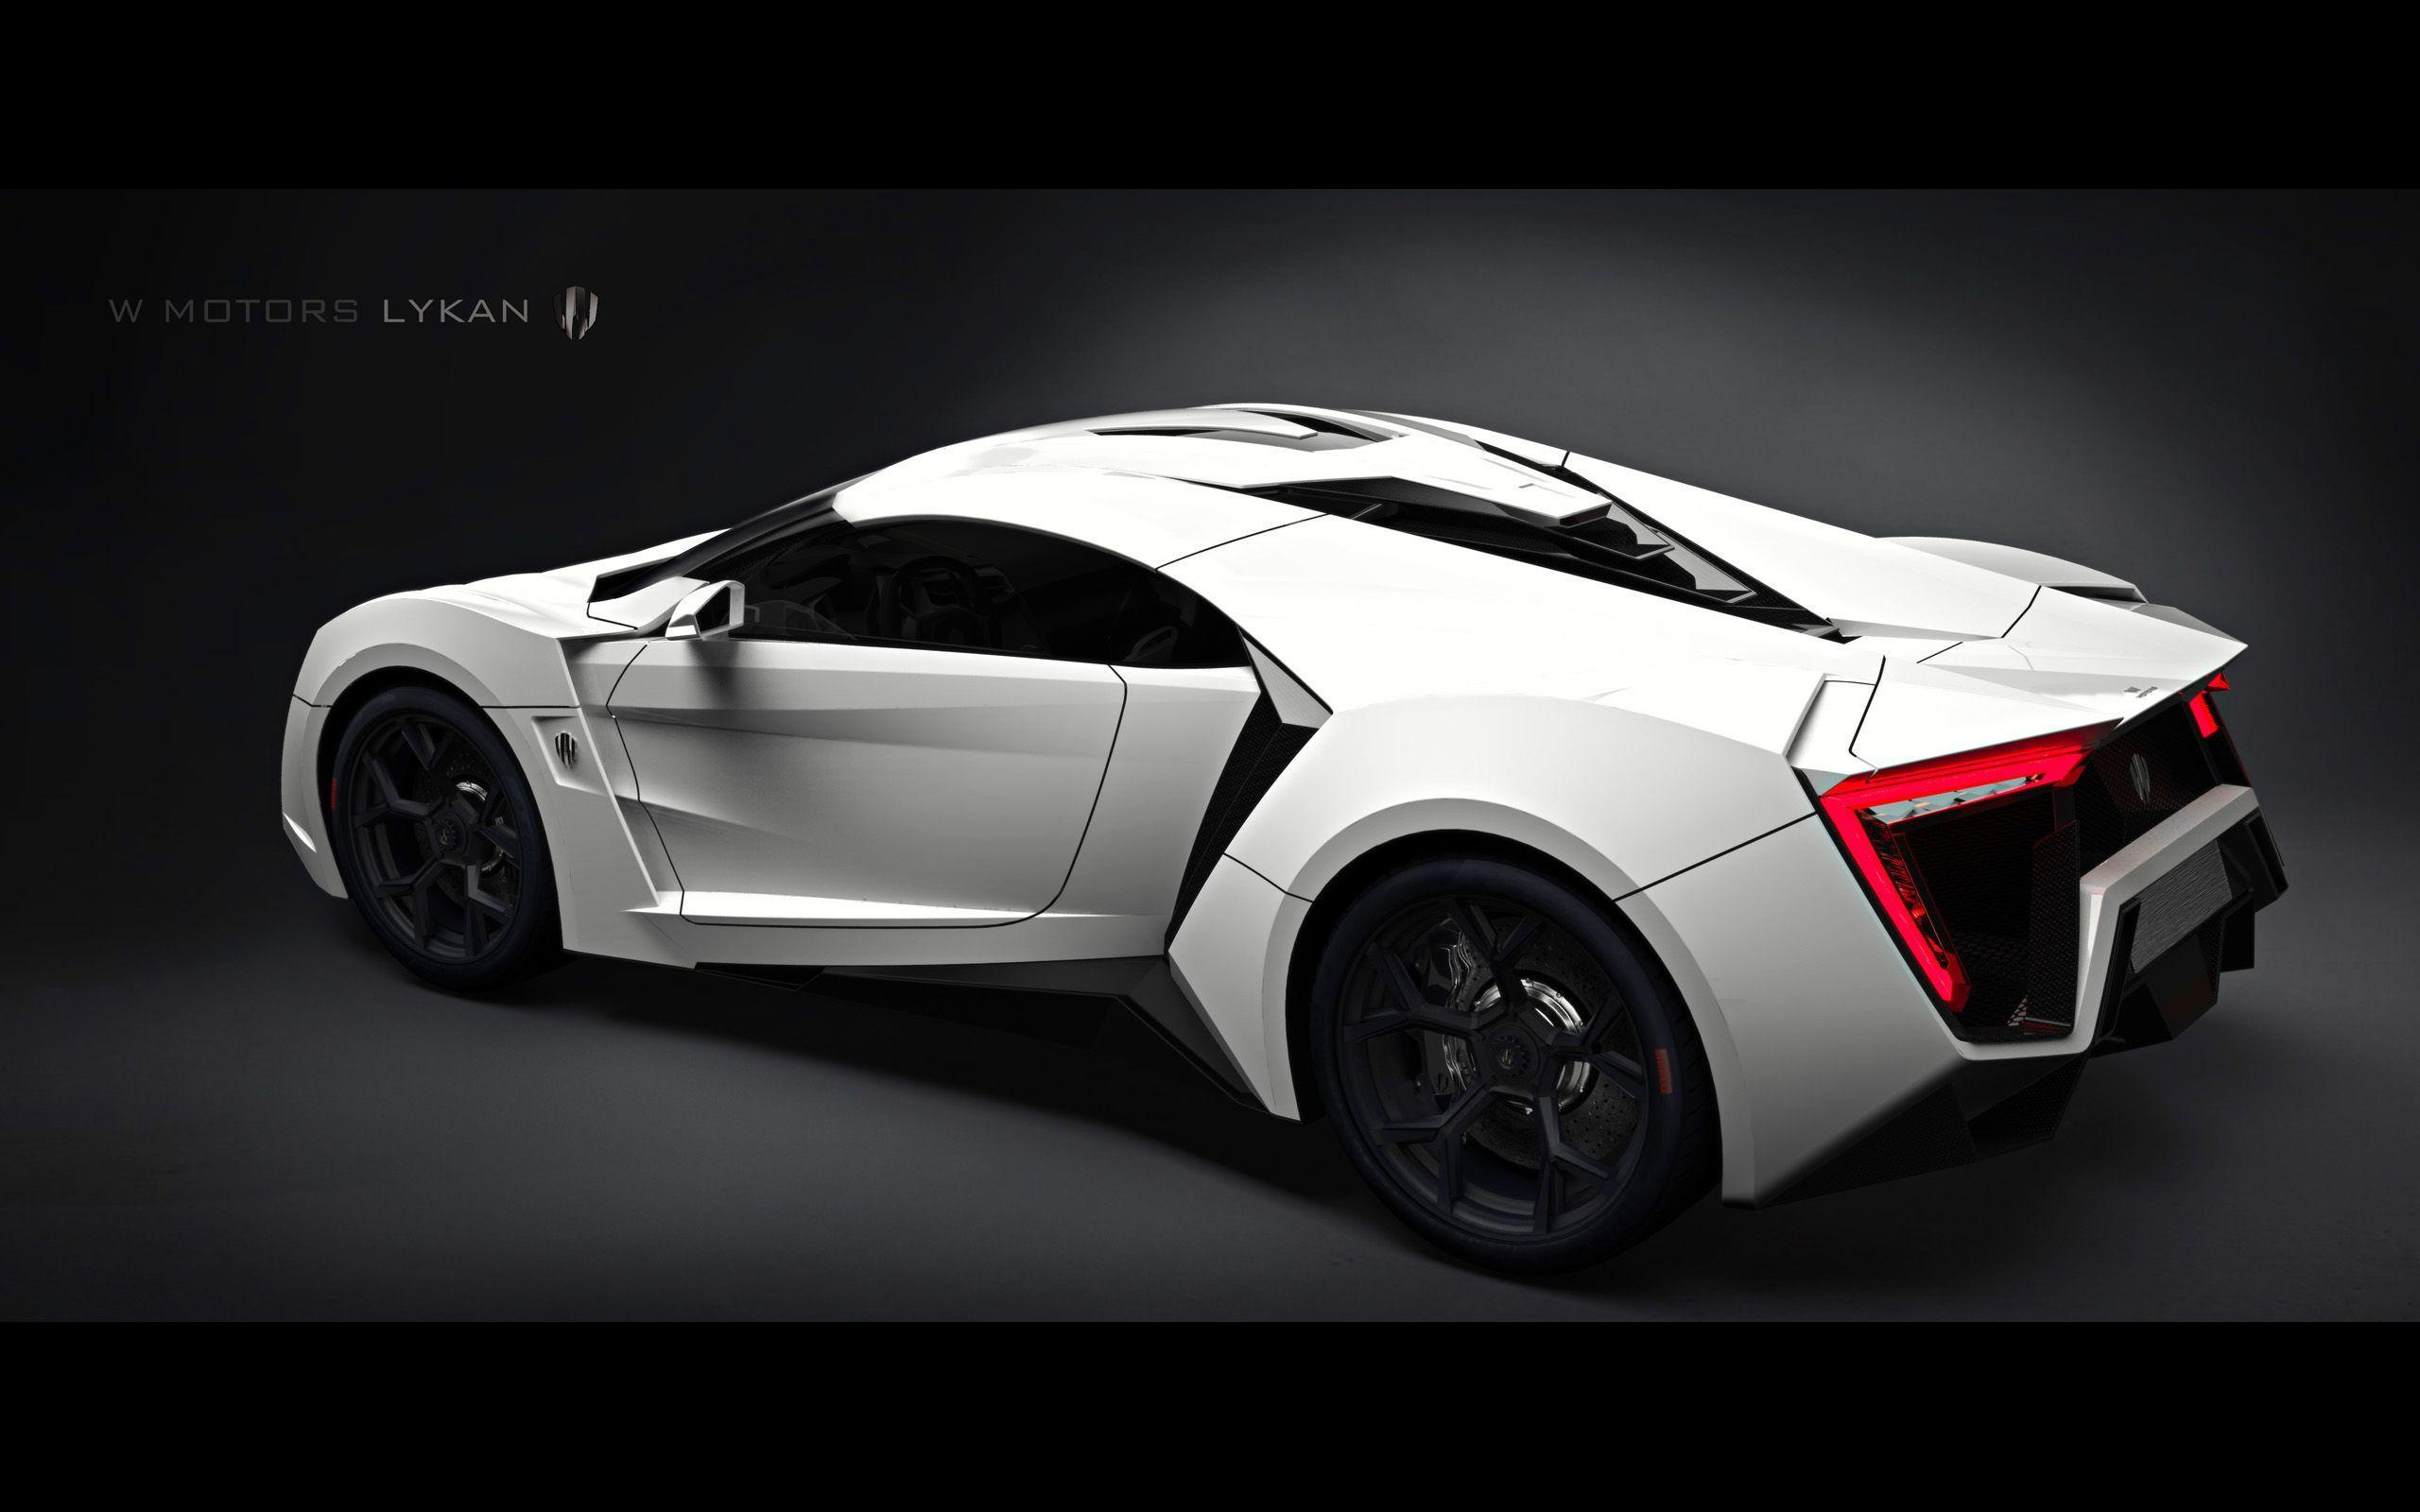 W Motors Wallpapers Wallpaper Cave